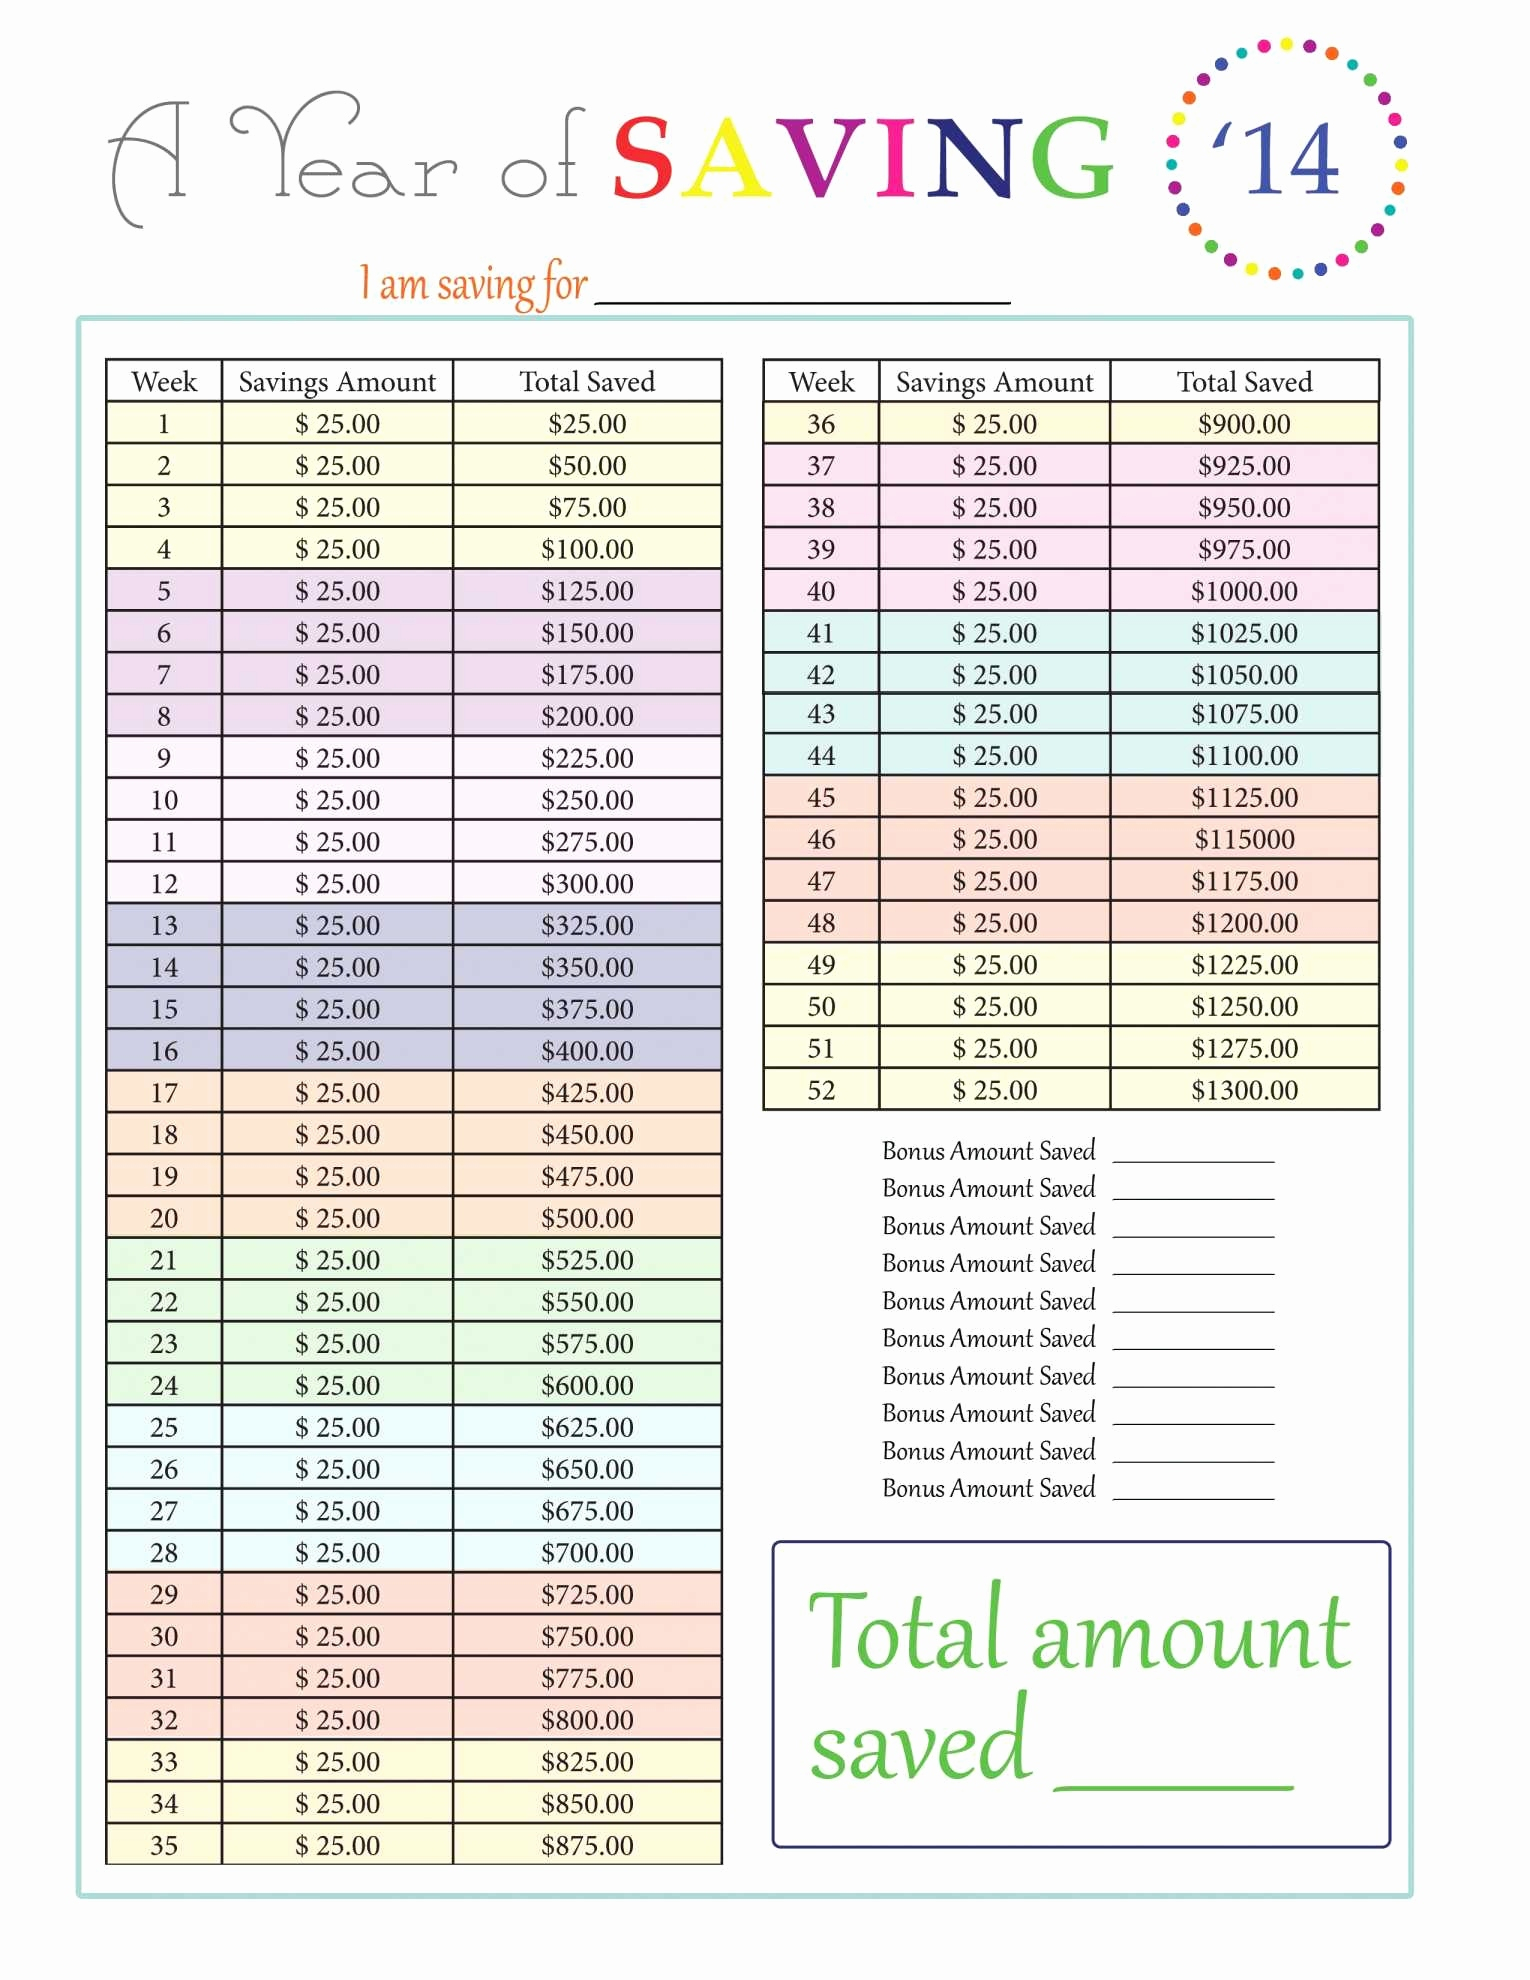 Debt Payment Spreadsheet Inside Credit Card Debt Payoffsheet Or Paying Off Worksheets Of  Askoverflow